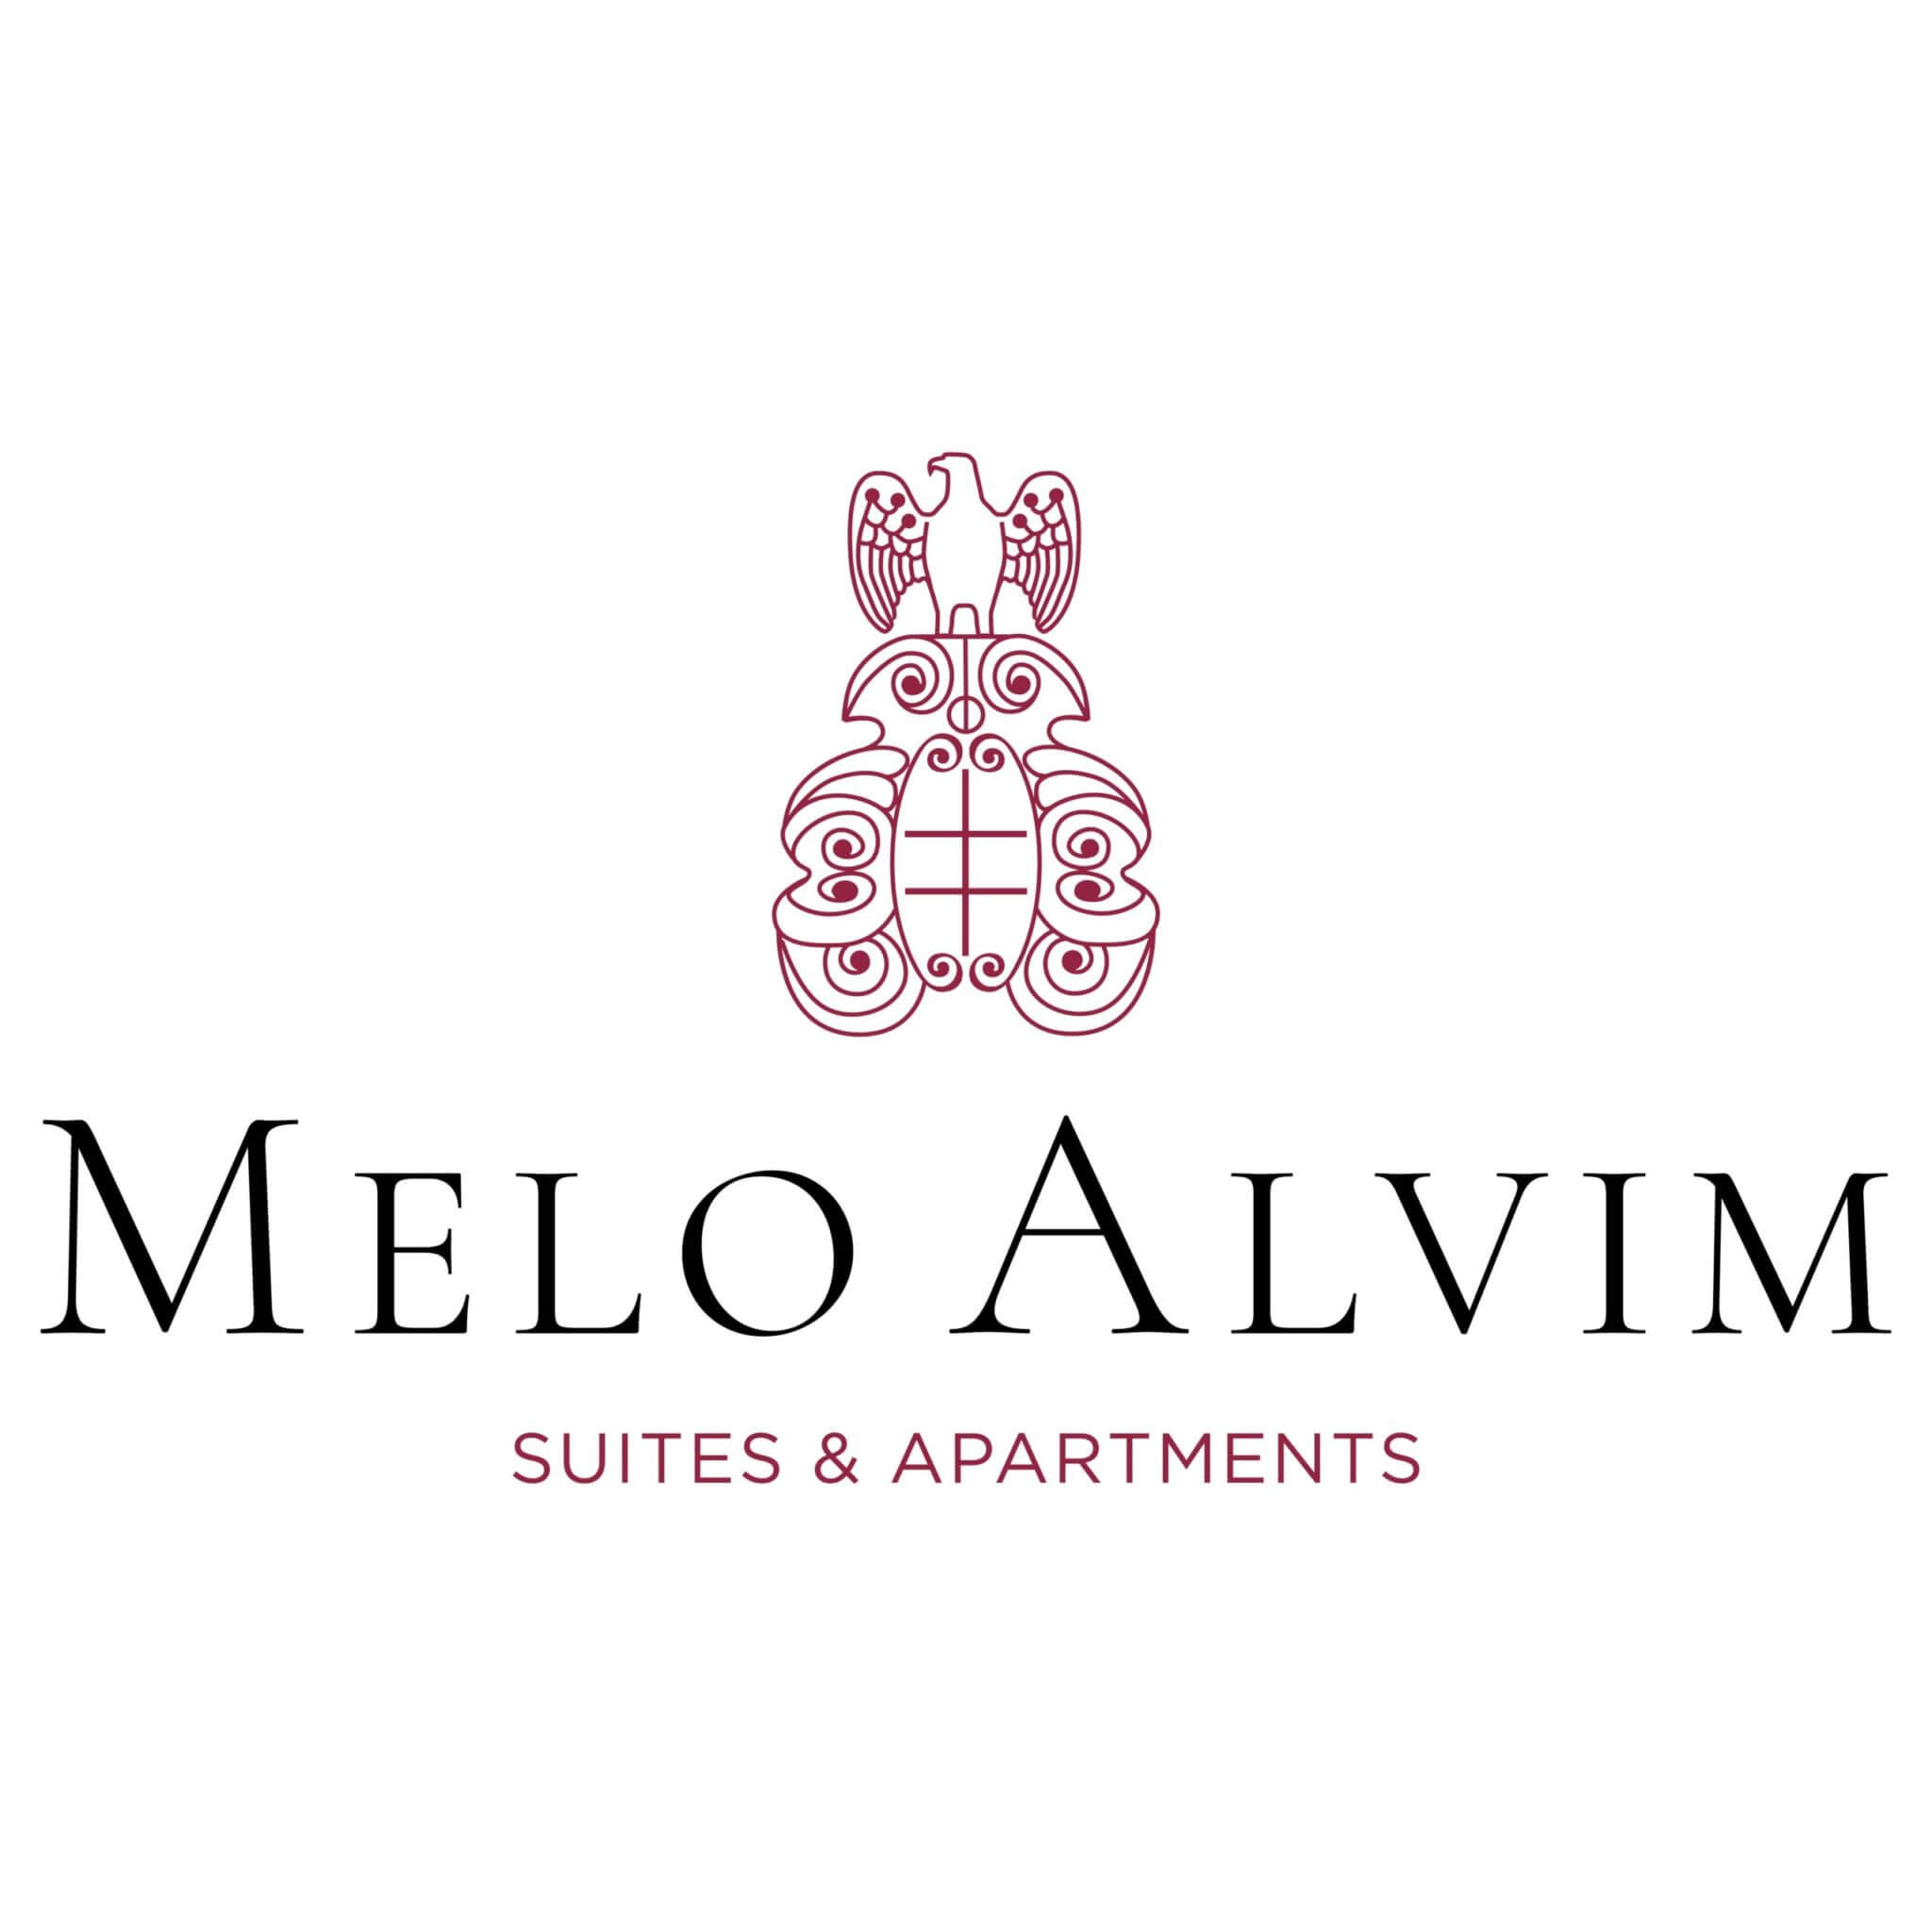 Casa Melo Alvim Suites & Apartments